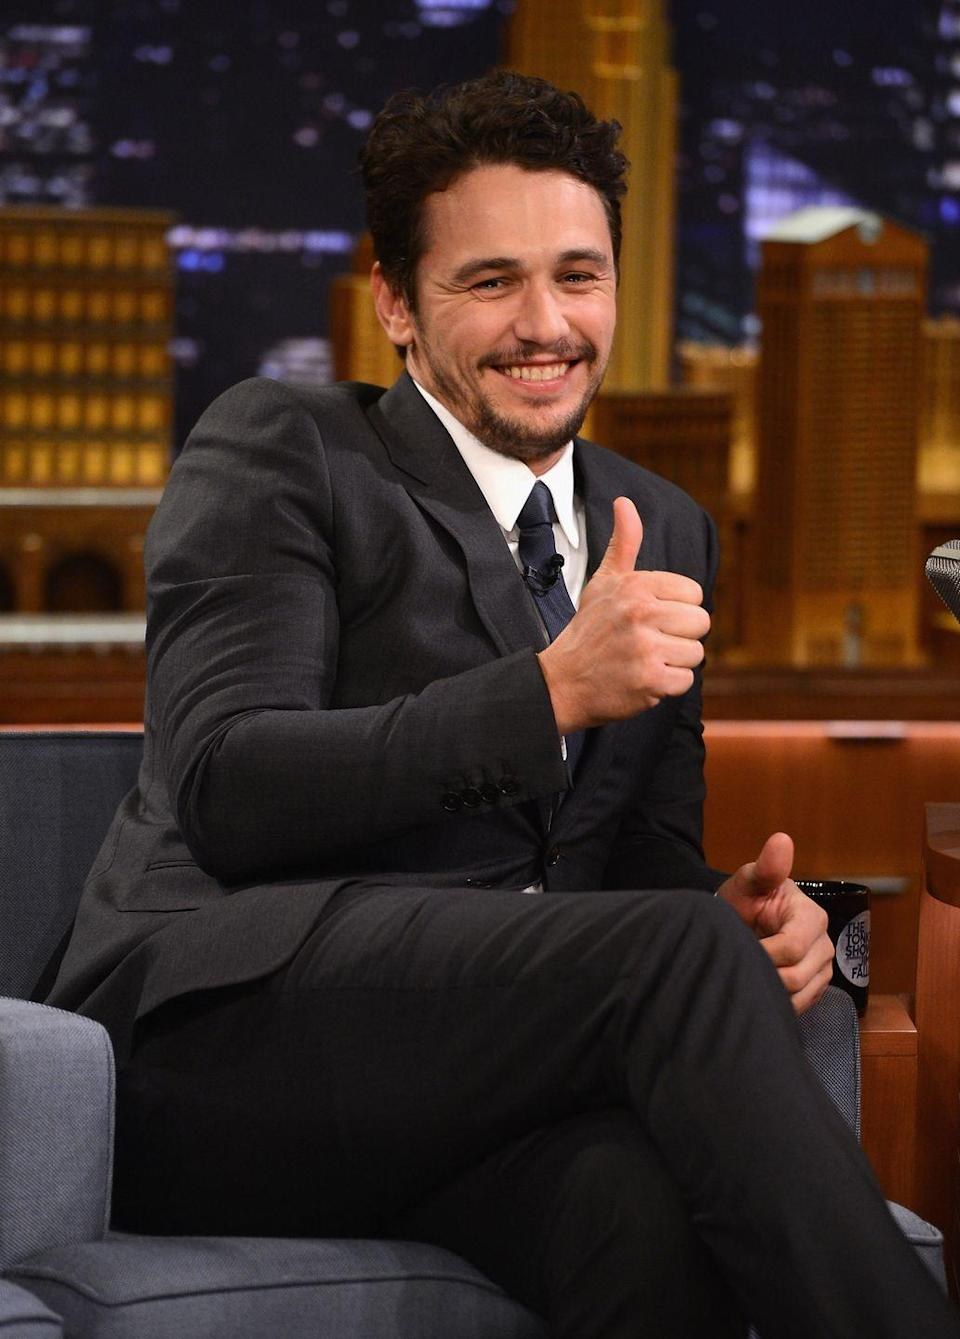 """<p>""""<em>Your Highness</em>? That movie sucks,"""" Franco told <em><a href=""""http://www.etonline.com/news/134004_James_Franco_Covers_GQ_Comedy_Issue"""" rel=""""nofollow noopener"""" target=""""_blank"""" data-ylk=""""slk:GQ"""" class=""""link rapid-noclick-resp"""">GQ</a></em> of the medieval parody. """"You can't get around that.""""</p>"""